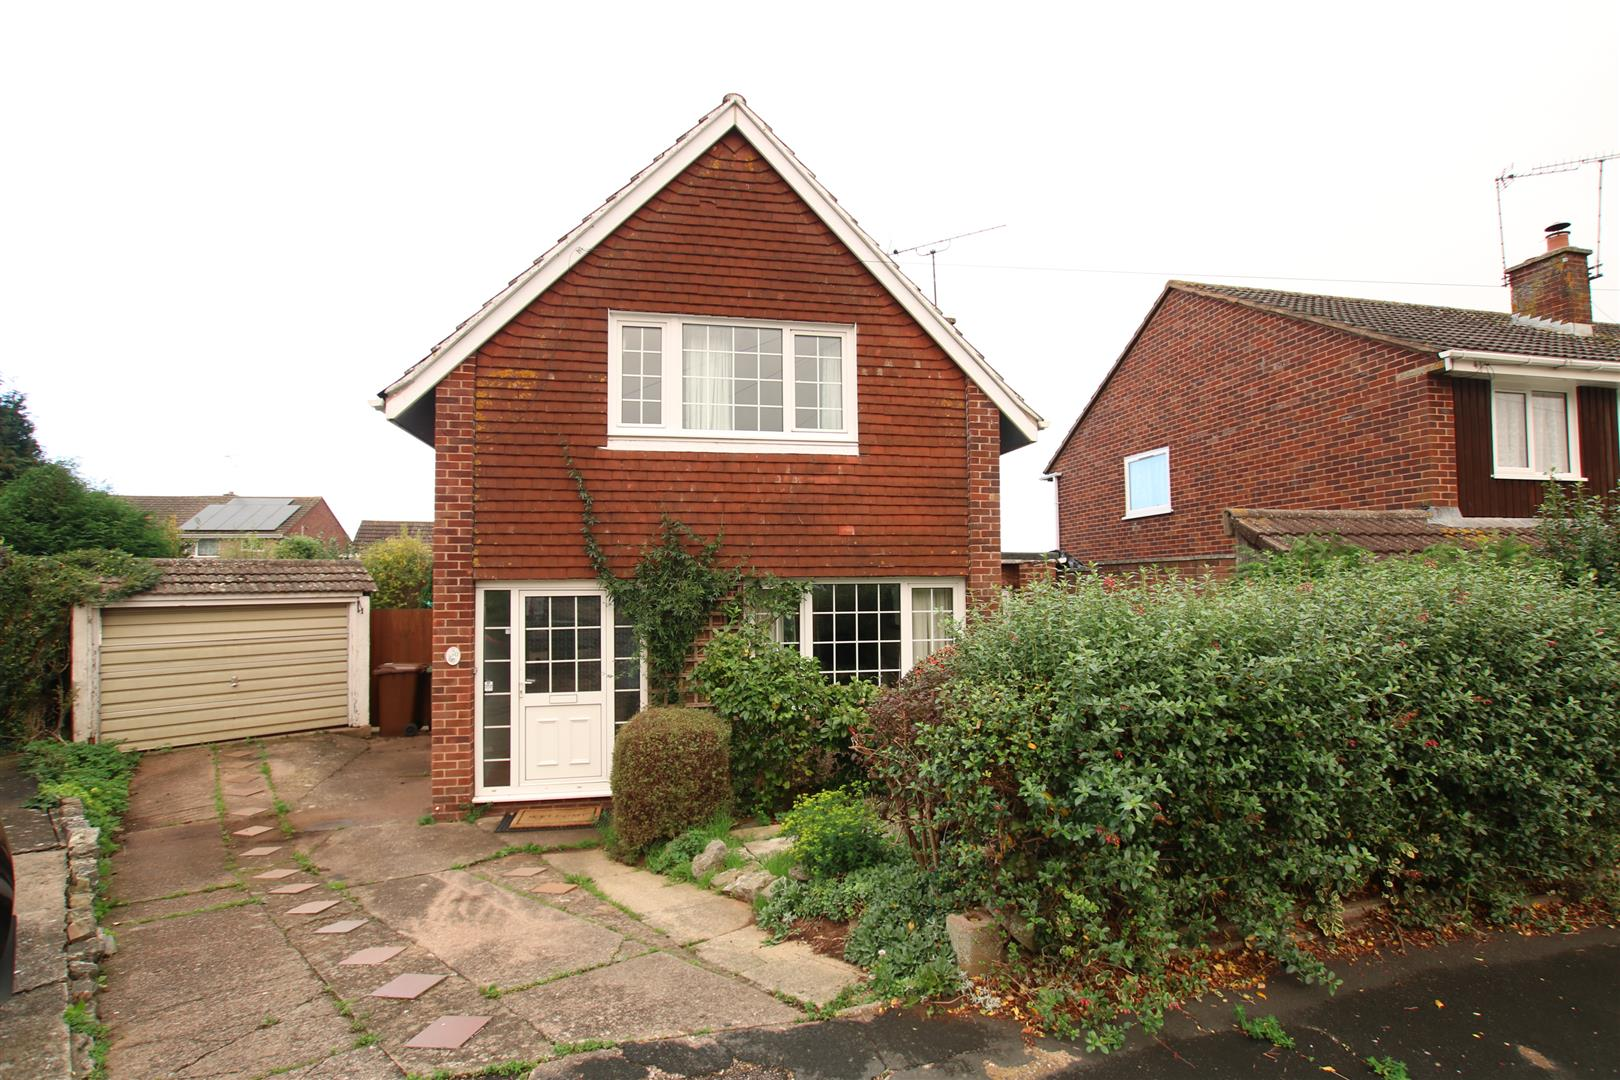 3 Bedrooms Detached House for sale in Walton Road, Broadfields, Exeter